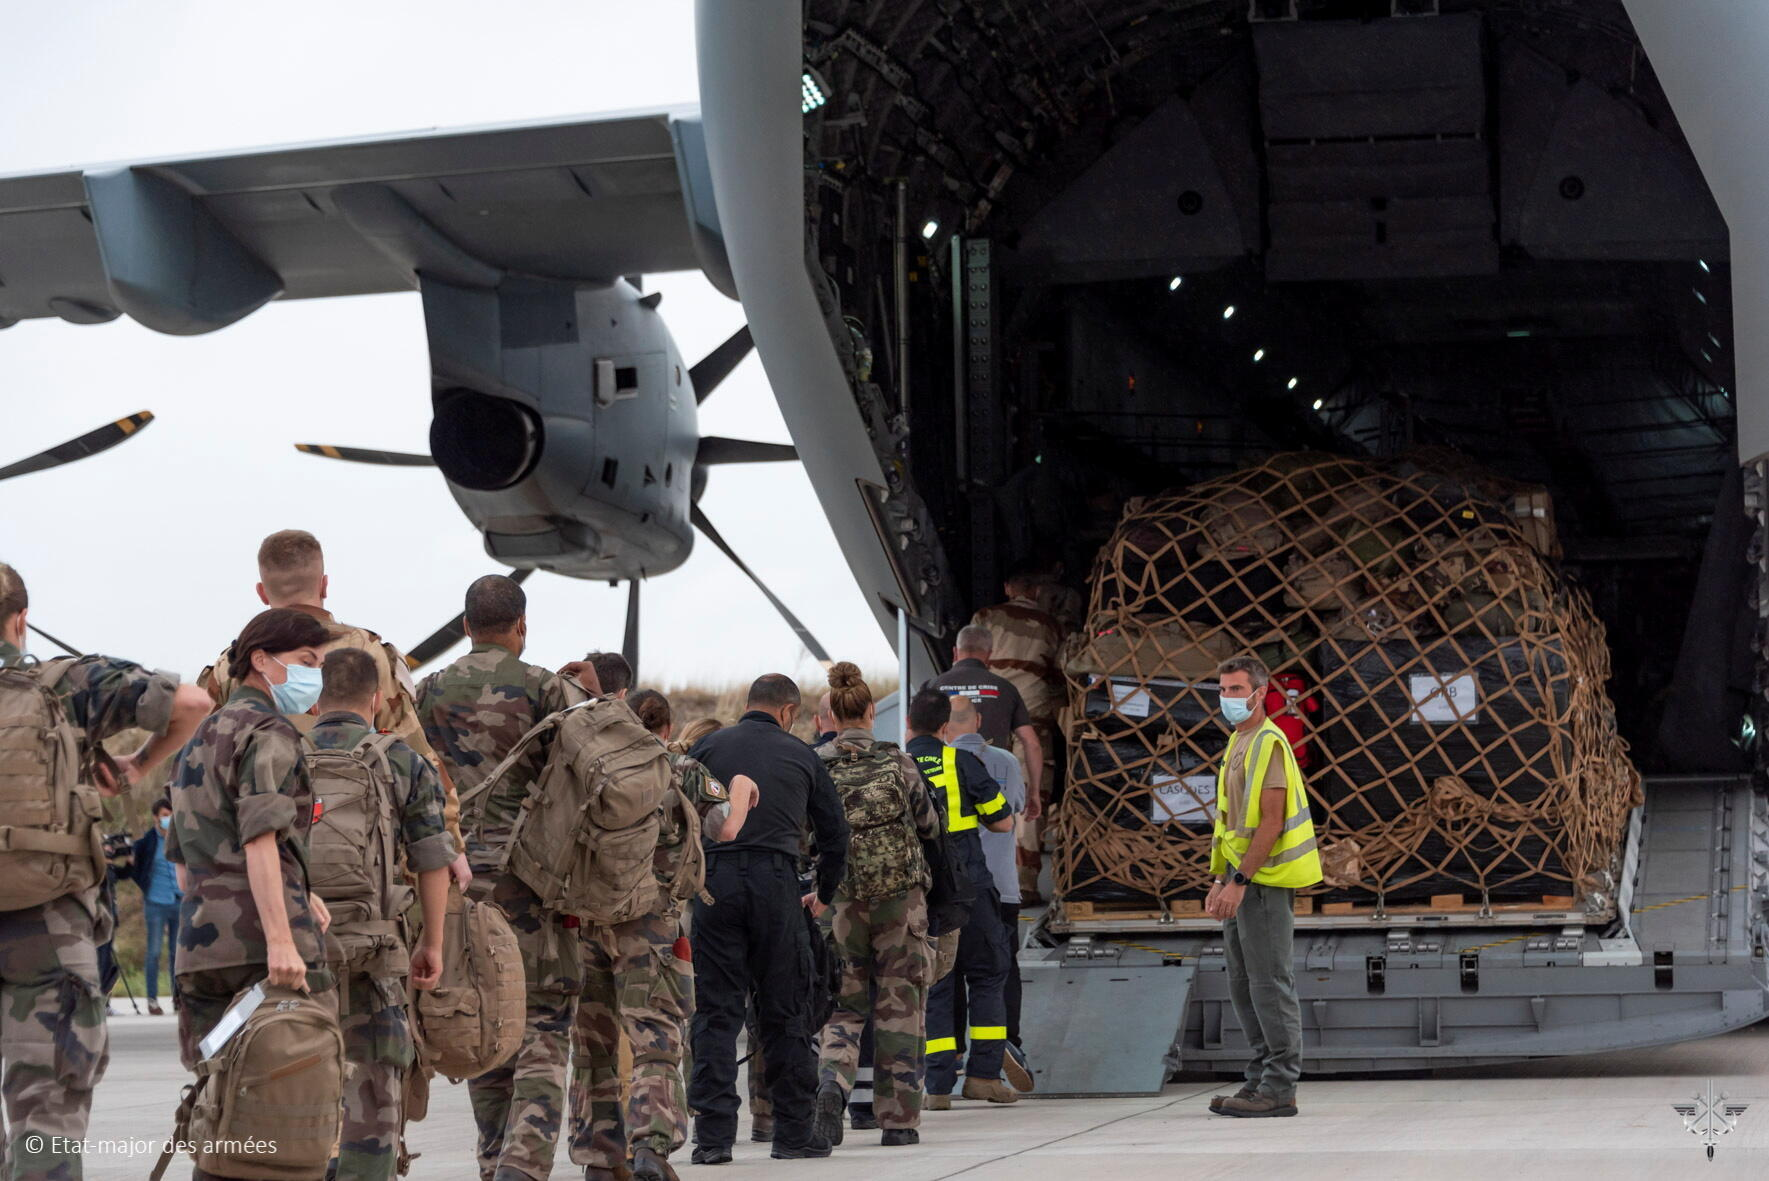 2021-08-16T150701Z_1508888177_RC2E6P9KMY8Y_RTRMADP_3_AFGHANISTAN-CONFLICT-FRANCE